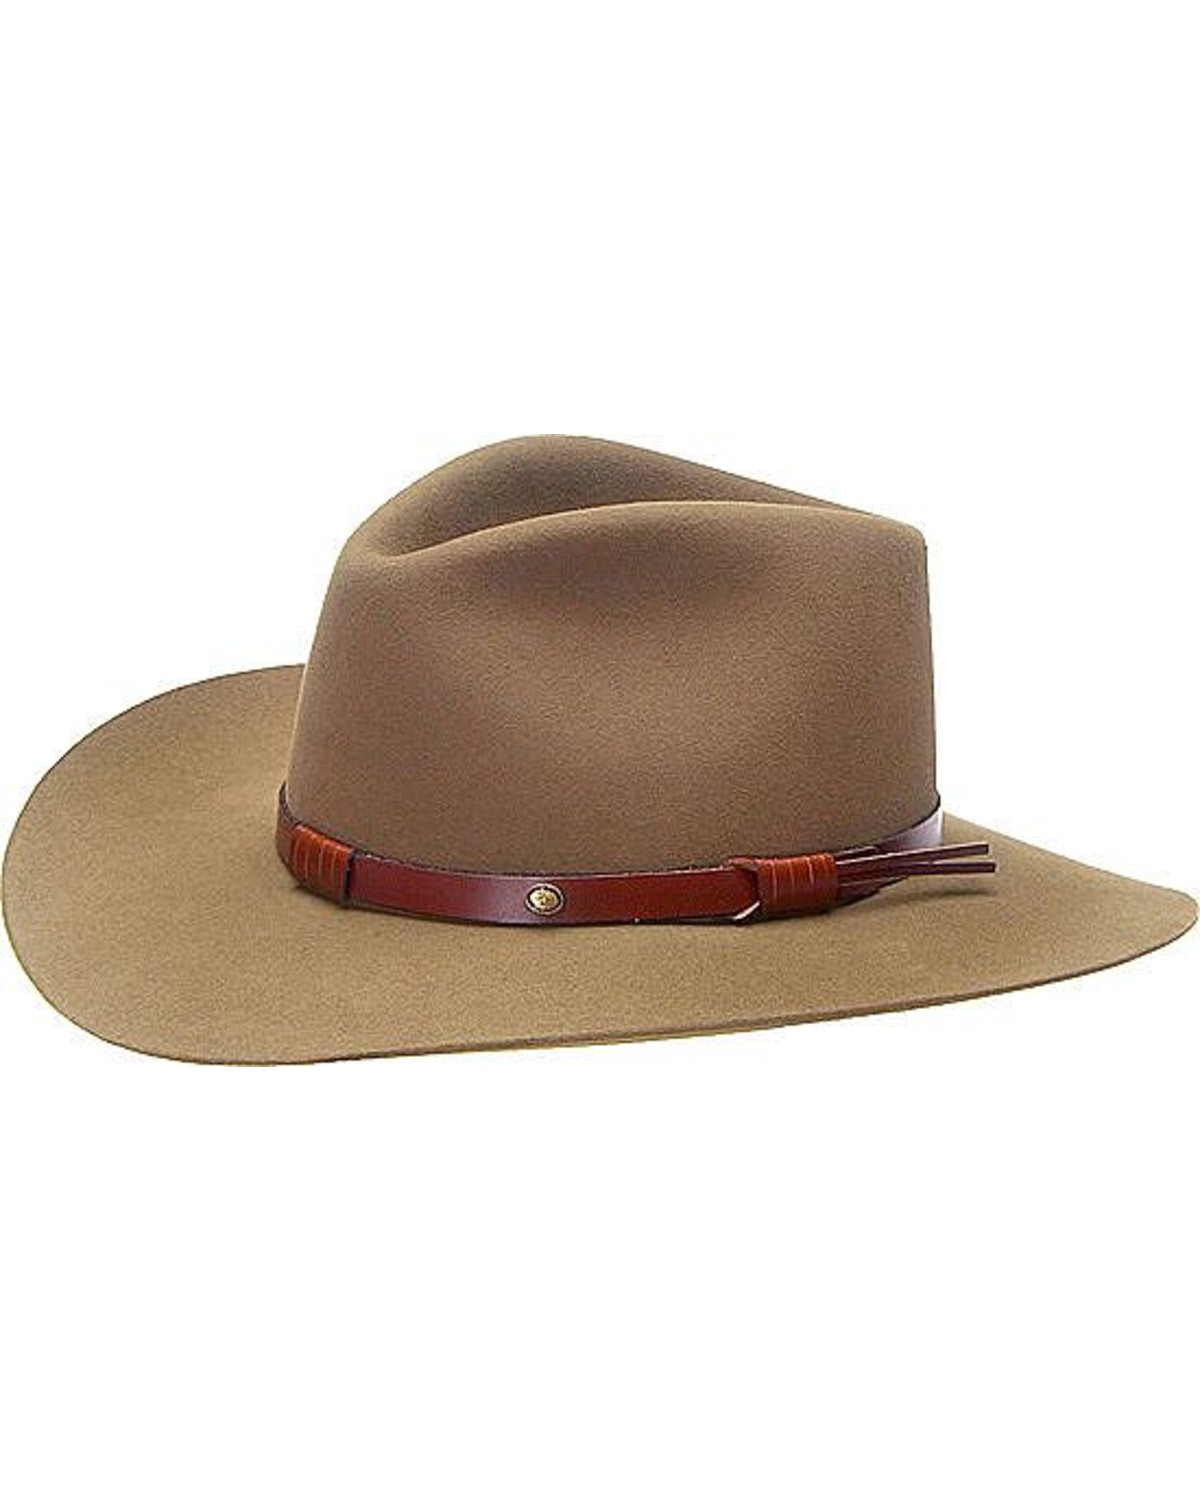 how to pack a stetson hat